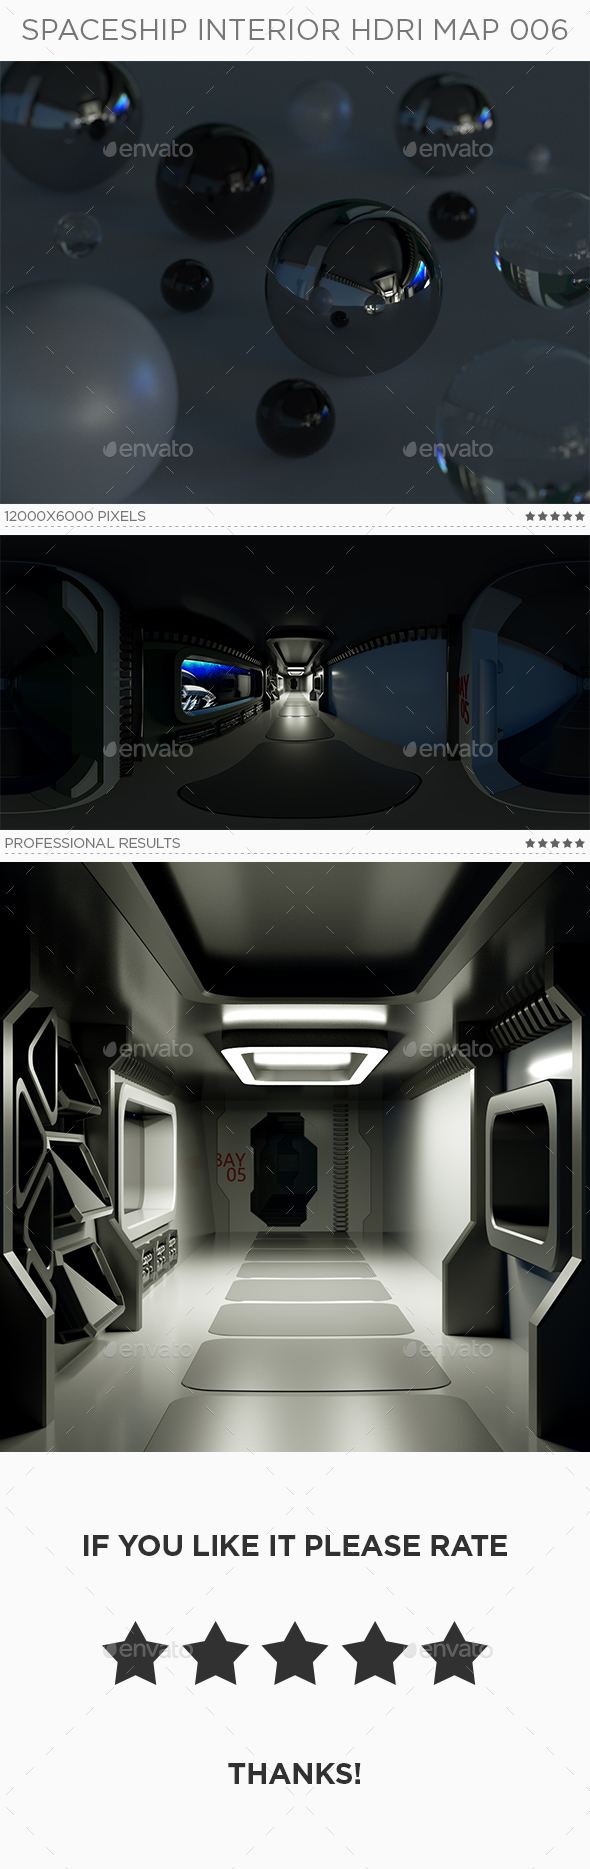 Spaceship Interior HDRi Map 006 - 3DOcean Item for Sale